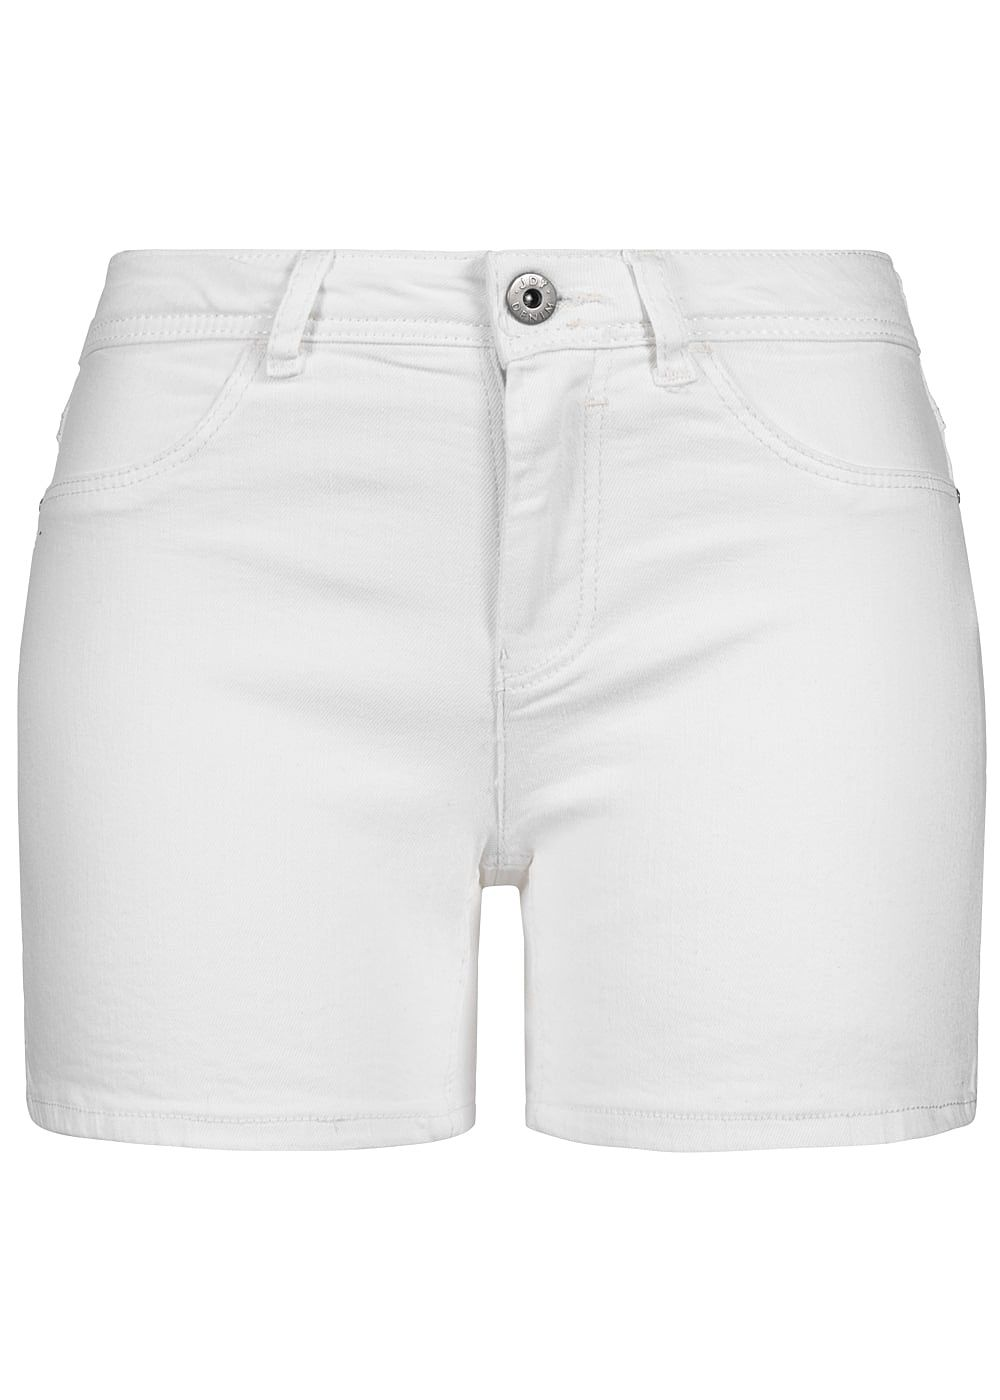 JDY by ONLY Damen Jeans Shorts 2-Pockets weiss denim - Art.-Nr.: 19030760-XS-WH